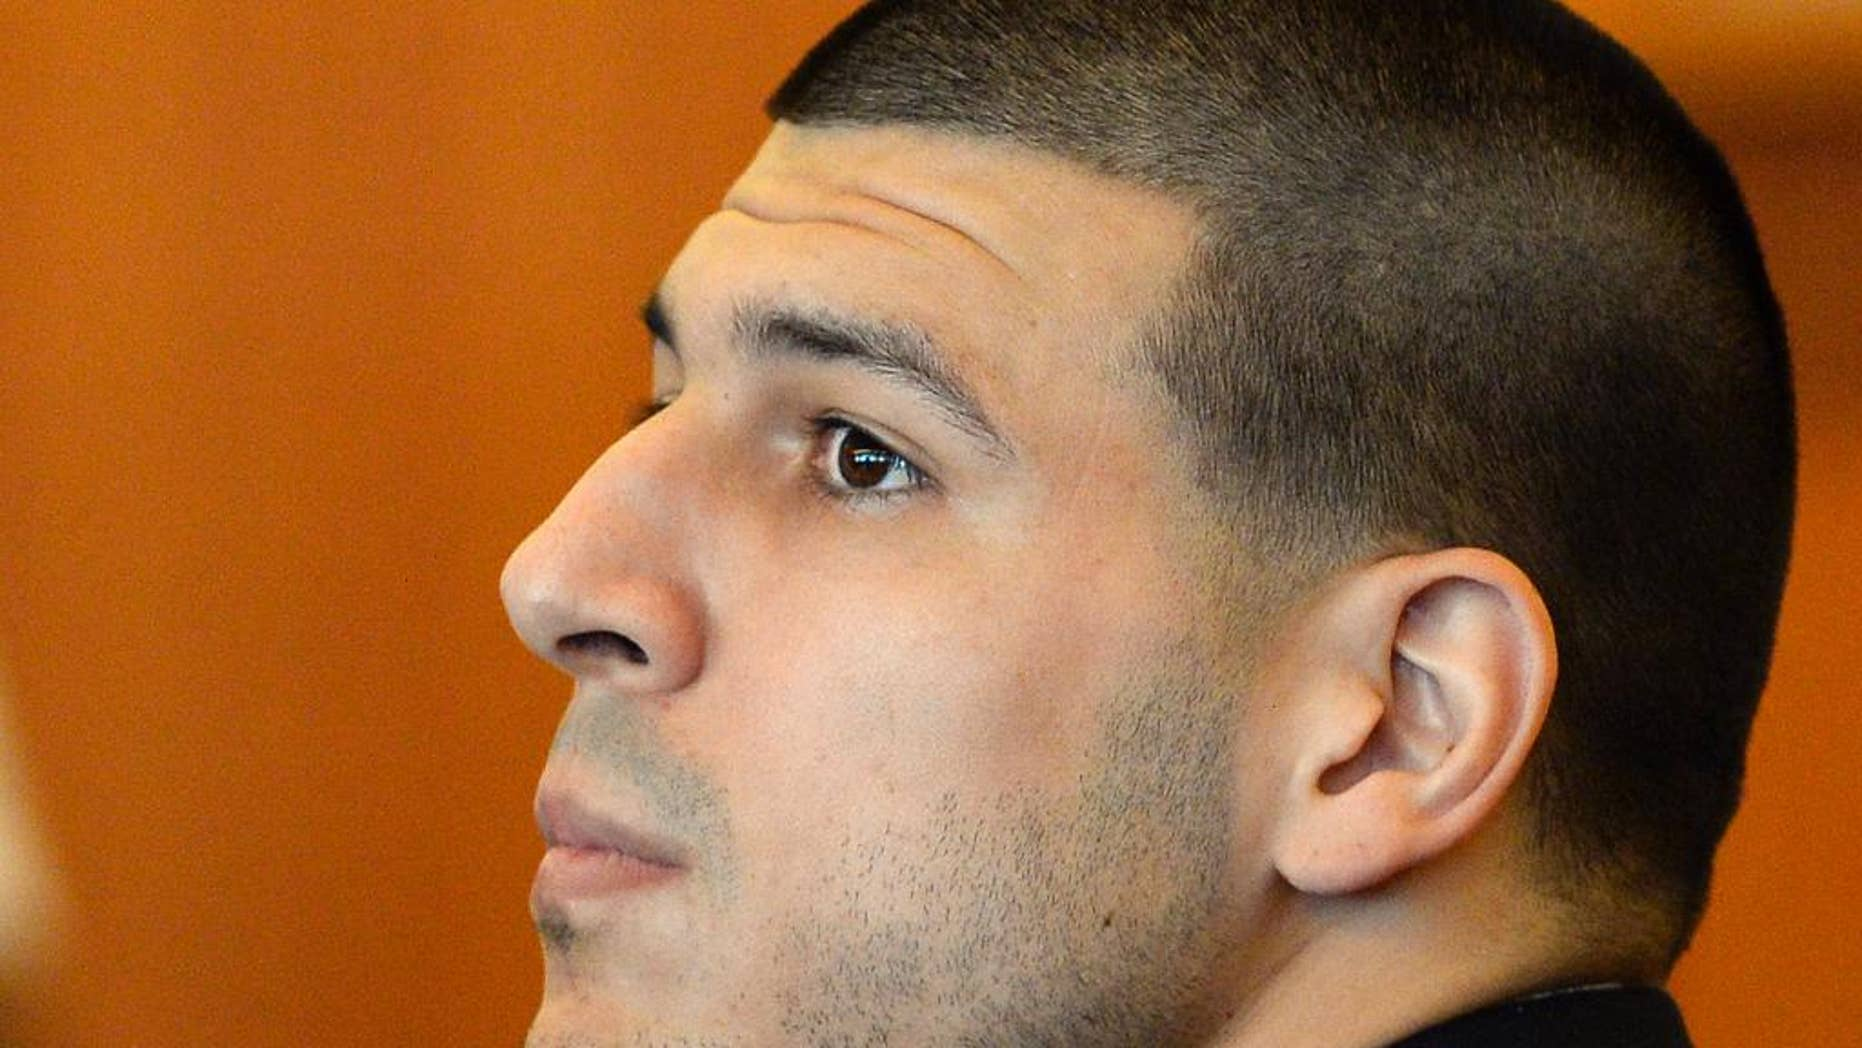 FILE - In this Tuesday, July 22, 2014, file photo, former NFL football player Aaron Hernandez watches during a hearing in Bristol County Superior Court, in Fall River, Mass. A judge is hearing arguments, Tuesday, Sept. 30, 2014, on a bid by Hernandez's lawyers to have additional evidence in a murder case against him thrown out. (AP Photo/CJ Gunther, Pool, File)